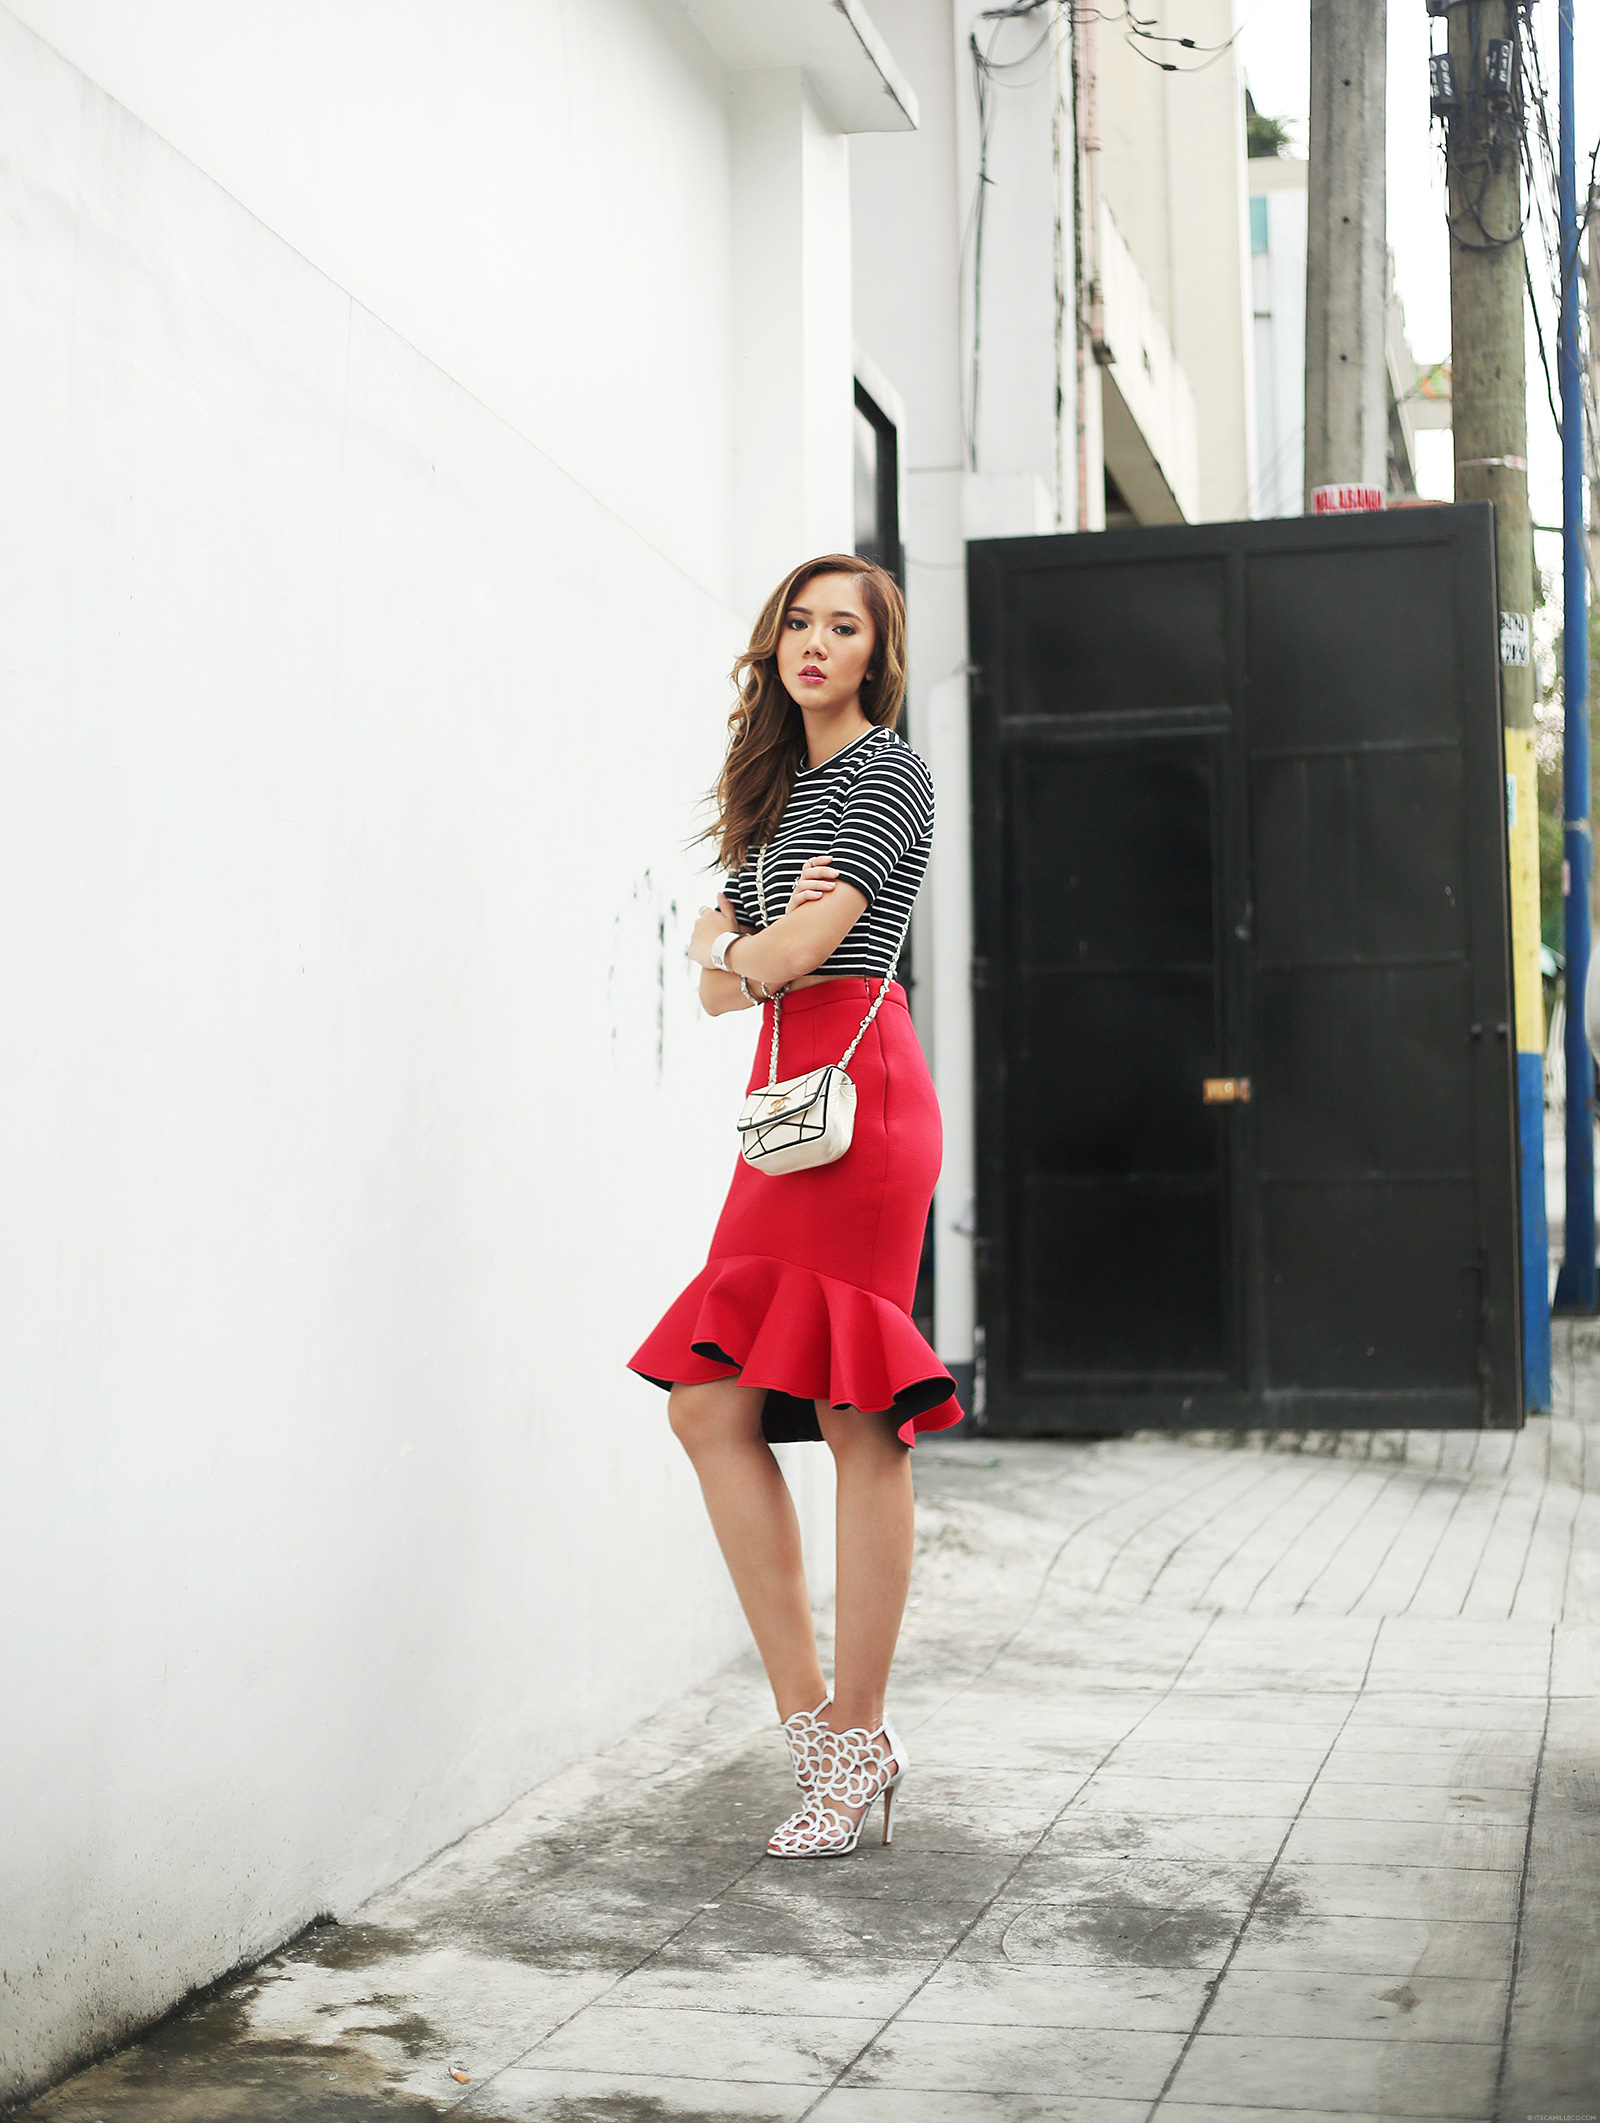 Topshop cropped top, Choies skirt, Oscar dela Renta heels, Chanel bag | www.itscamilleco.com